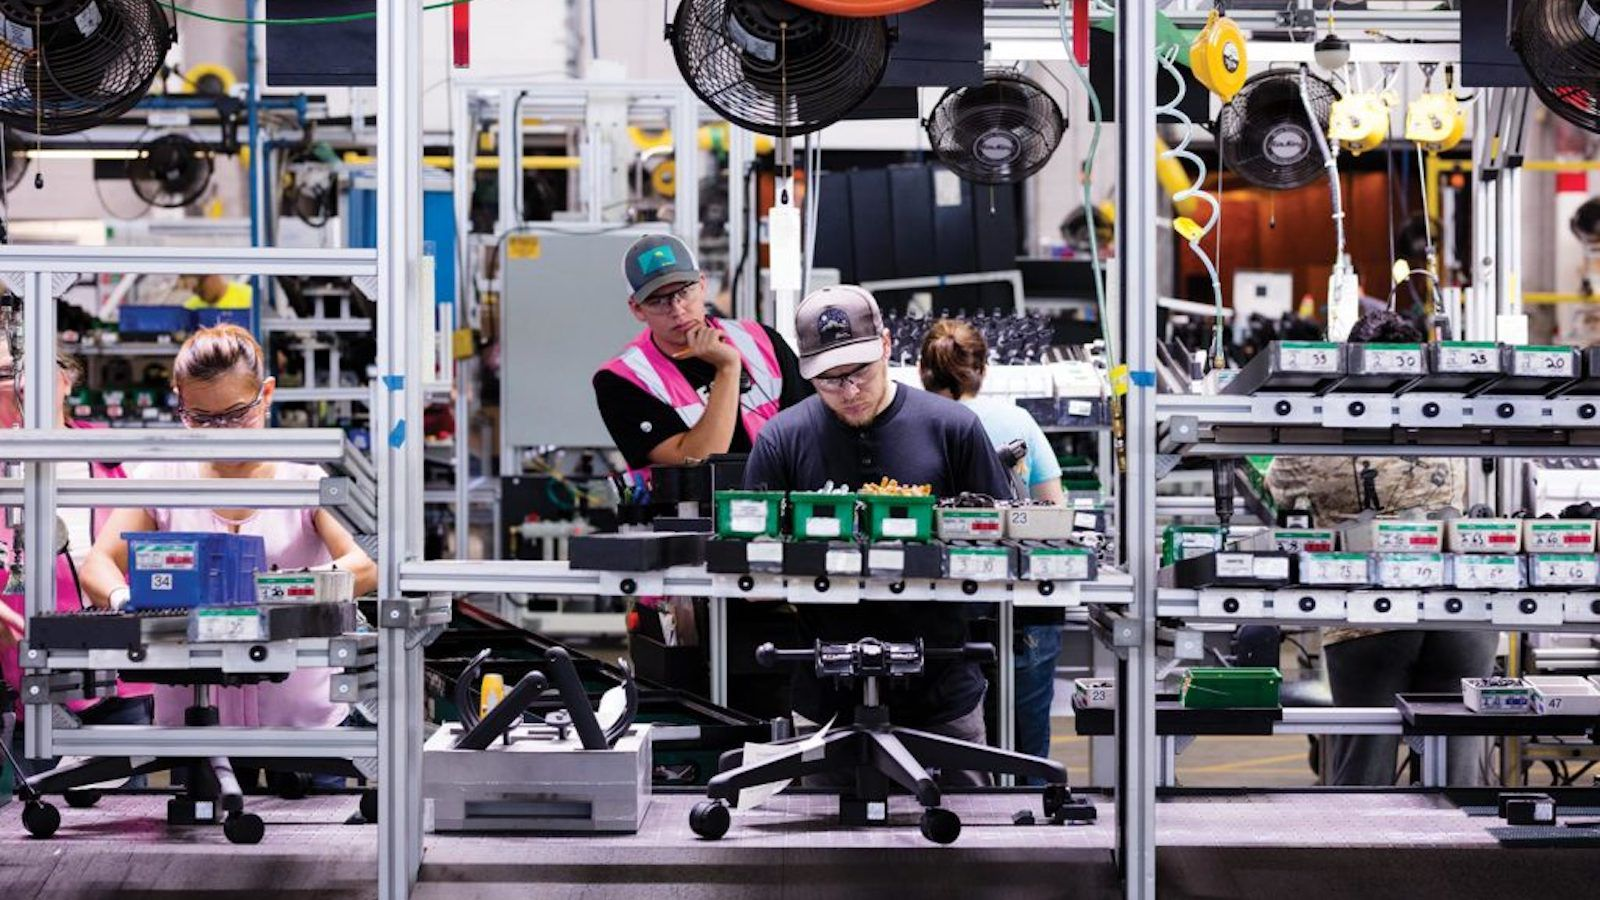 Toyota Production System Support Center is a division within Toyota that exists to share the car maker's renowned manufacturing know-how across North America.